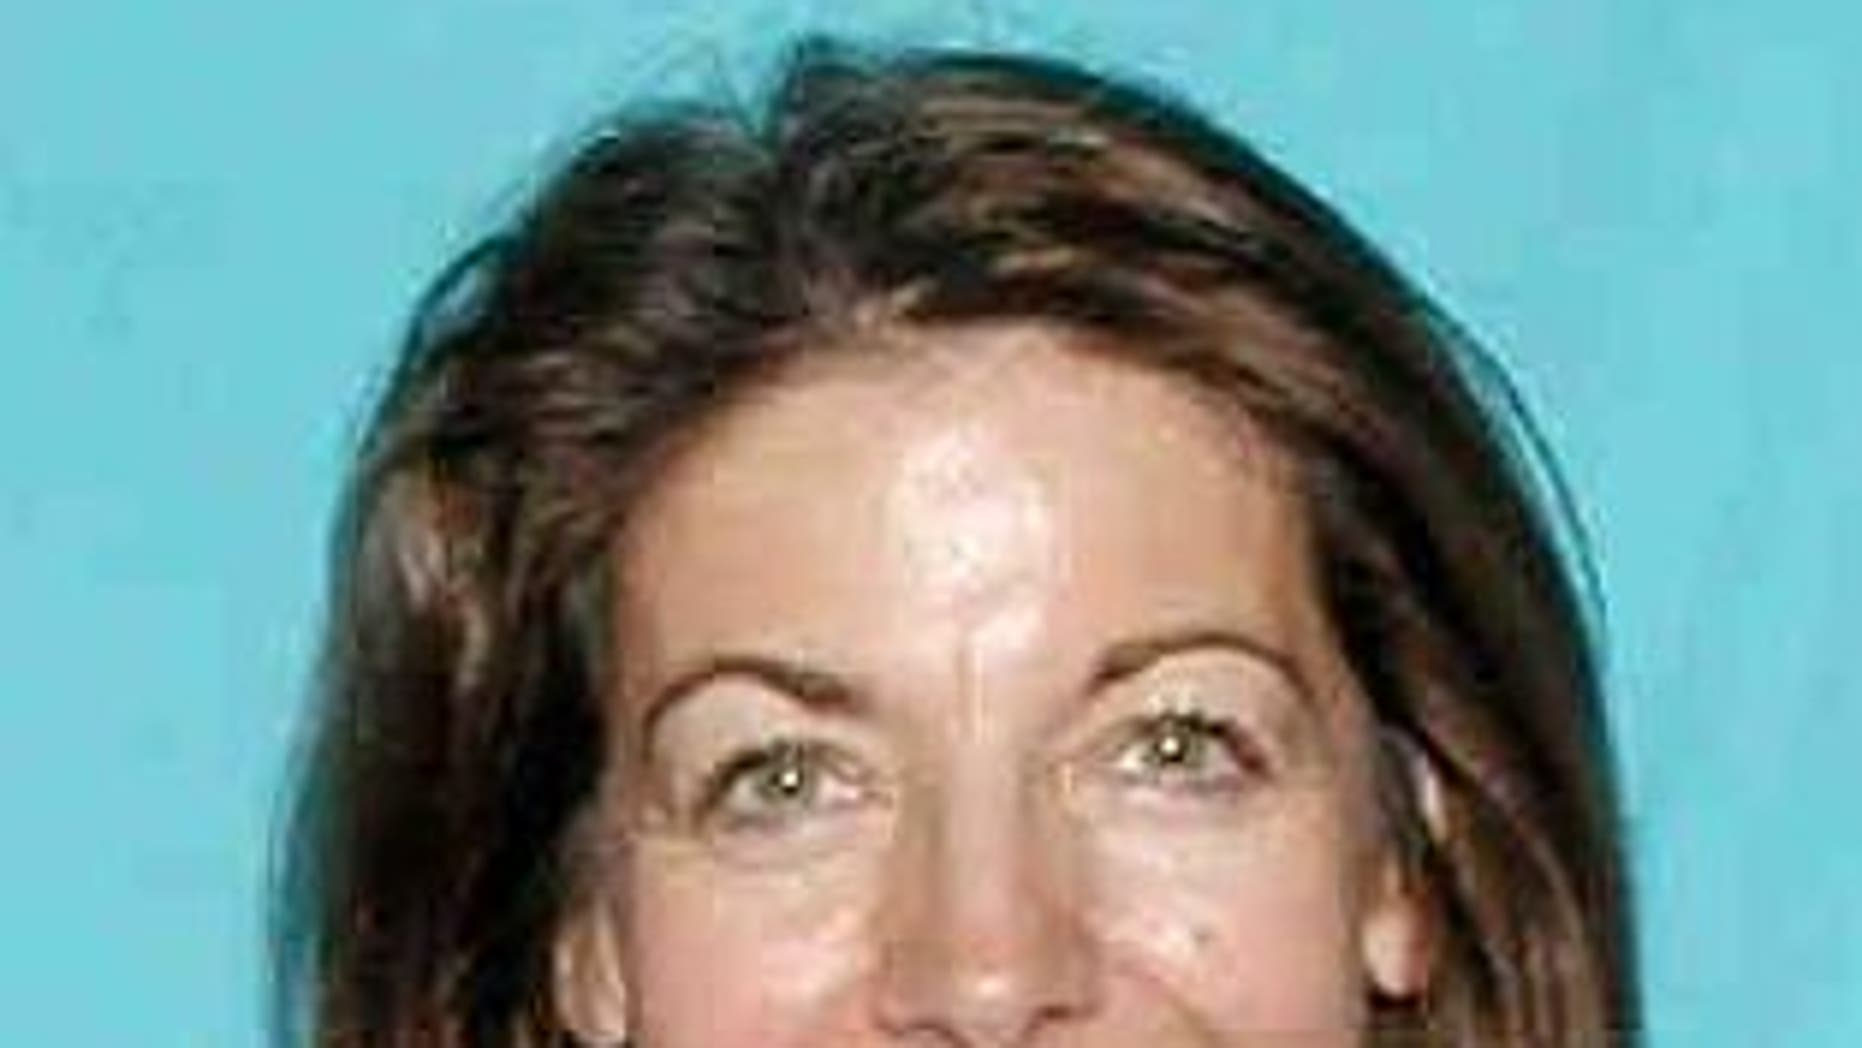 Sylviane Finck Lozada, 51, was reported missing on July 18. Authorities in Baton Rouge, La., say physical evidence from her home supports possible foul play.